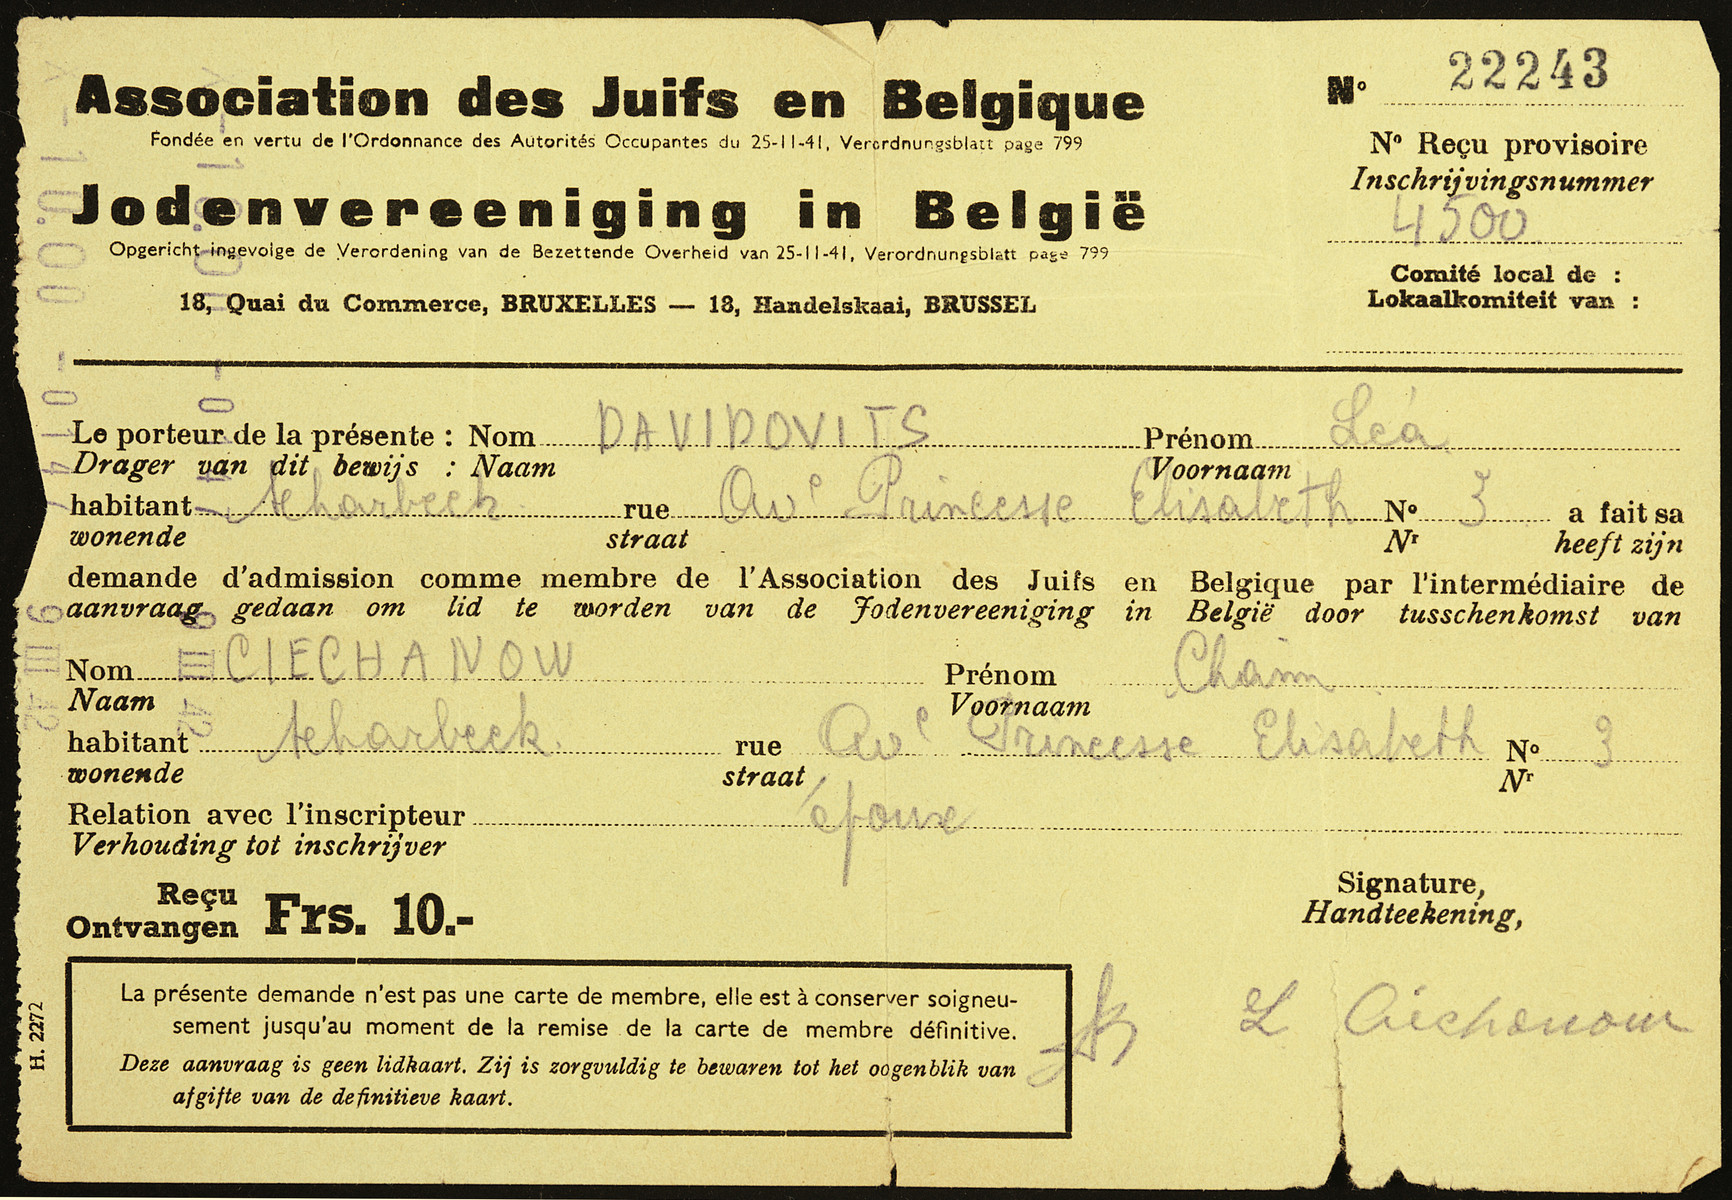 Jewish Association membership card issued to Lea Davidovits, aunt of the donor.  These papers were kept at the transit camp, Malines, after her deportation to Auschwitz.  Malines held on to the documentation for sixty-two years before sending it to Flora Singer, the surviving next-of-kin, in 2006.